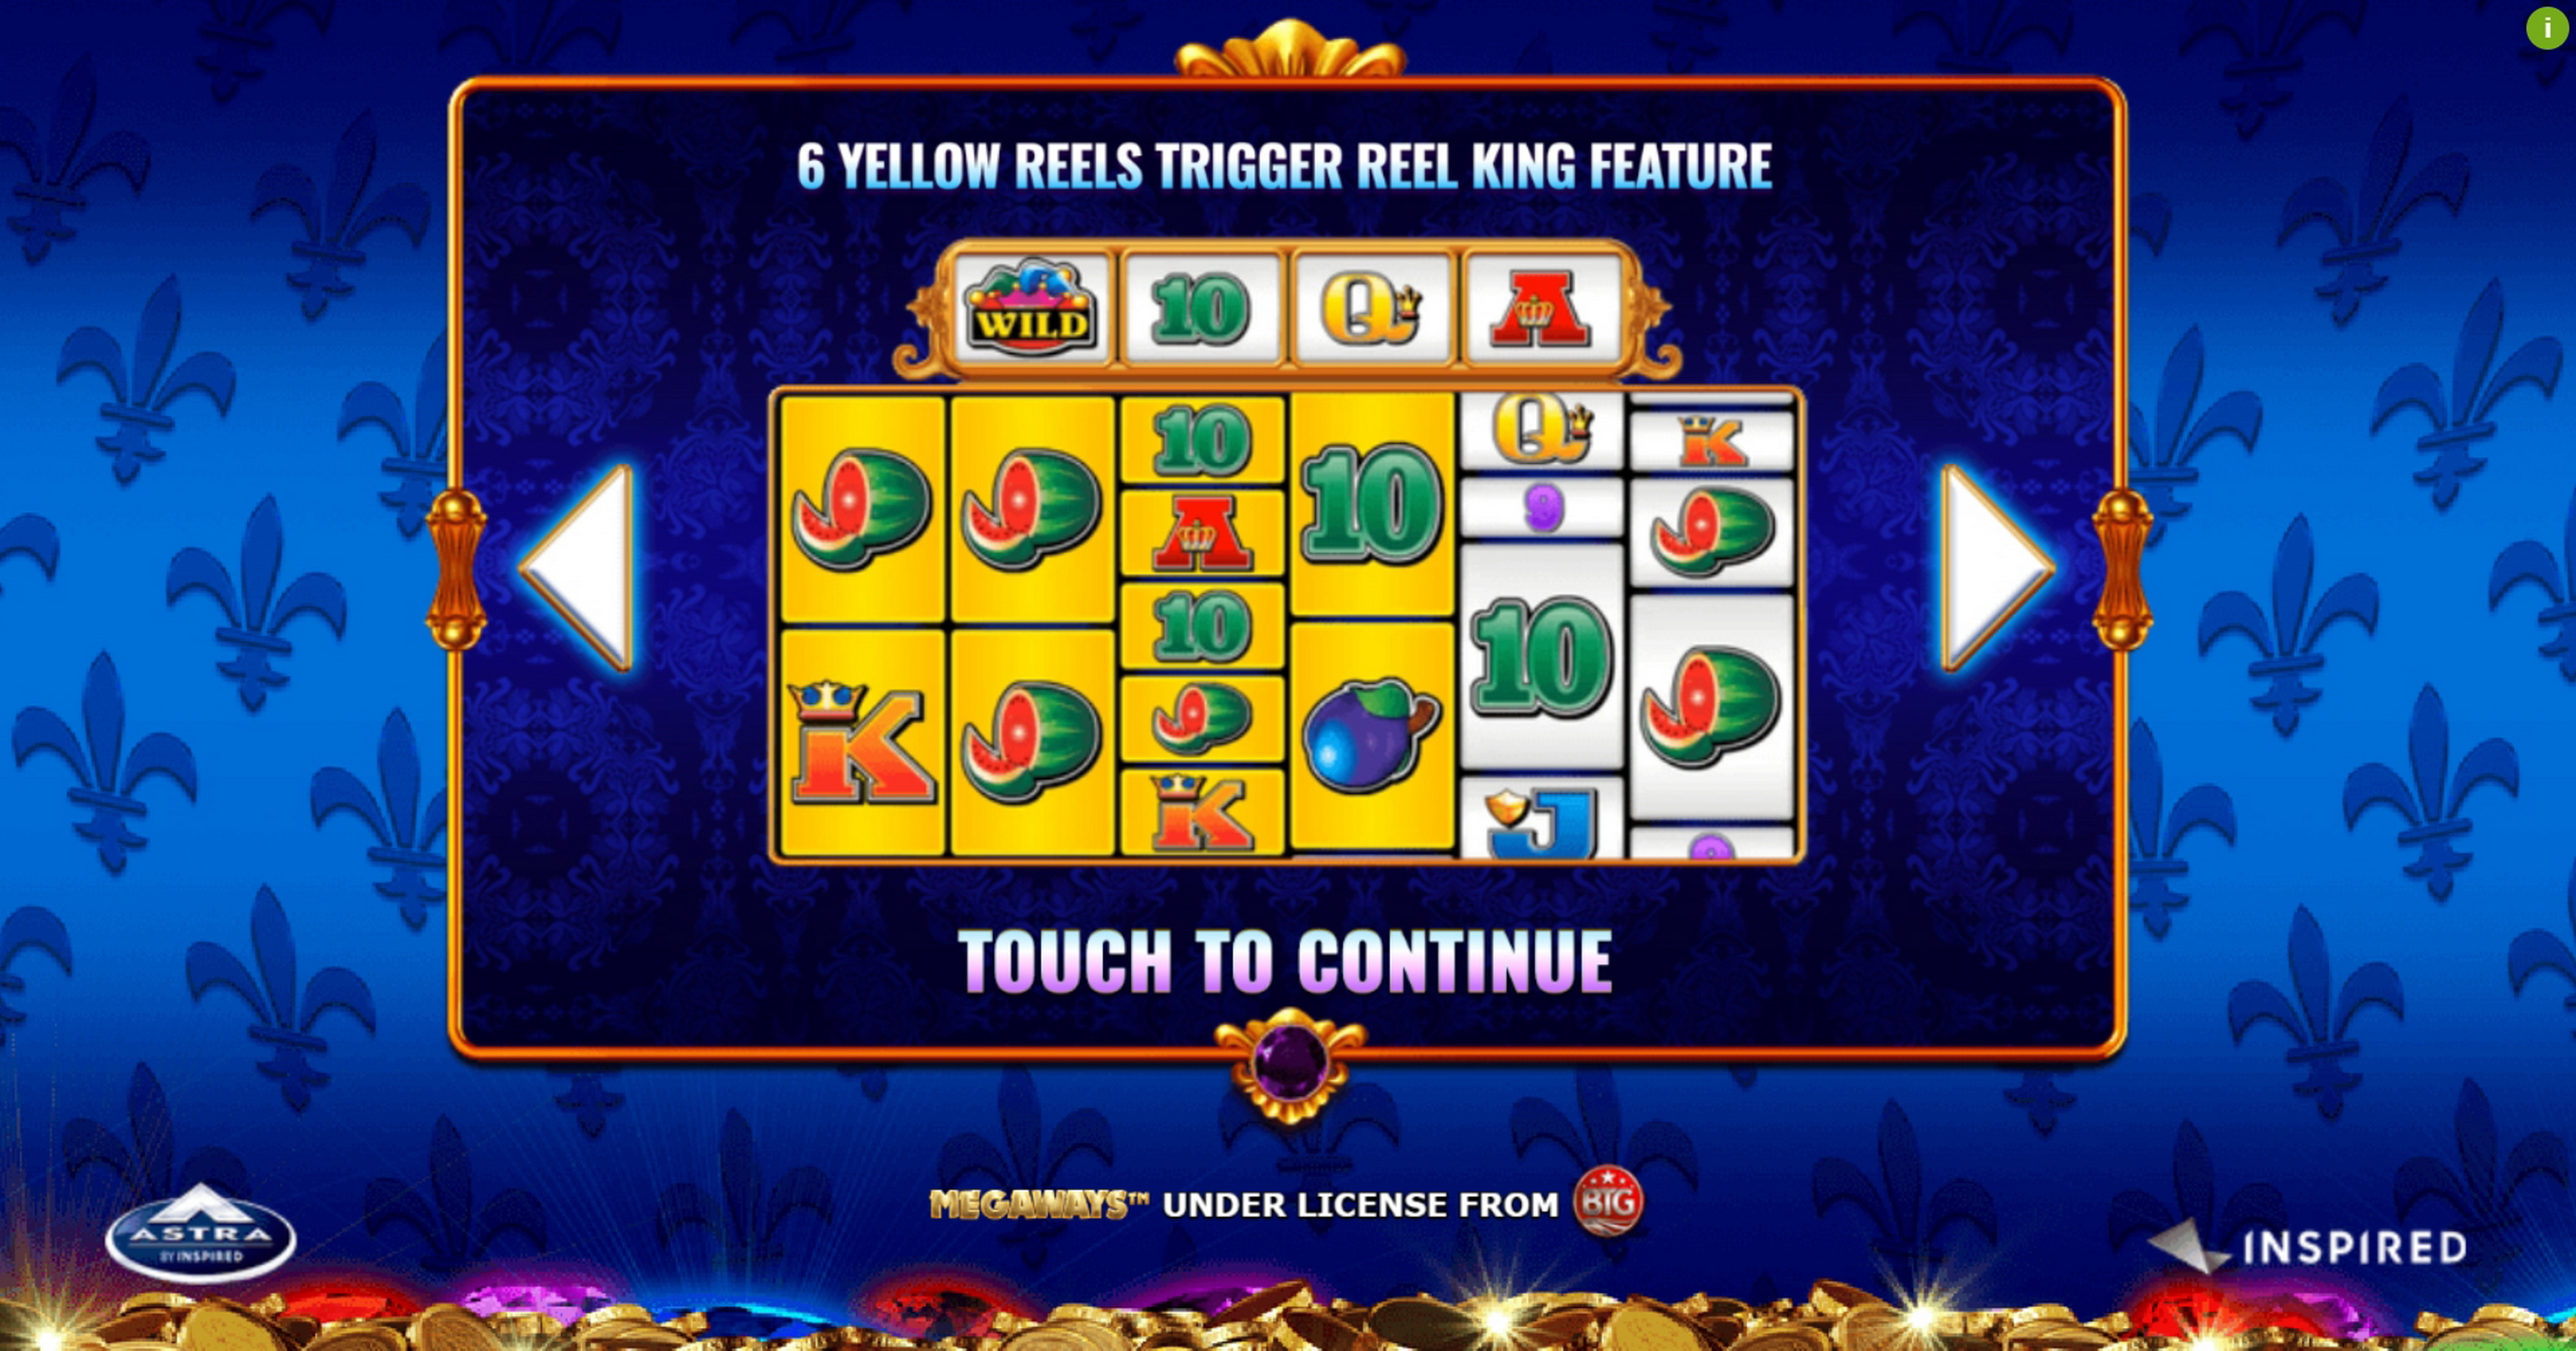 Play Reel King Megaways Free Casino Slot Game by Inspired Gaming